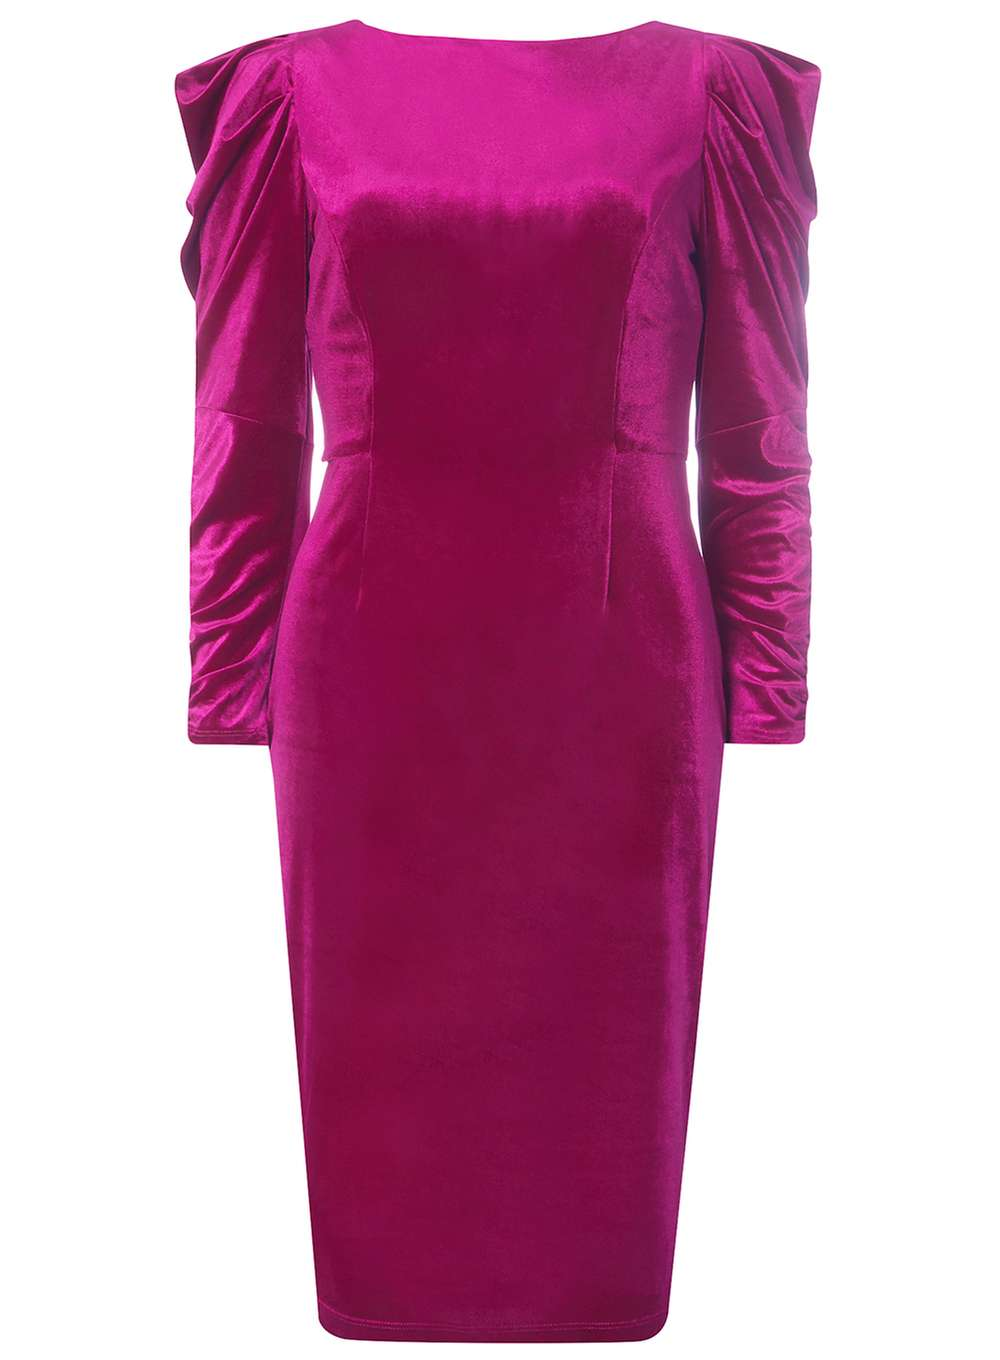 2d1e6345fa3 Pink Velvet Ruched Sleeve Bodycon Dress. From Dorothy Perkins